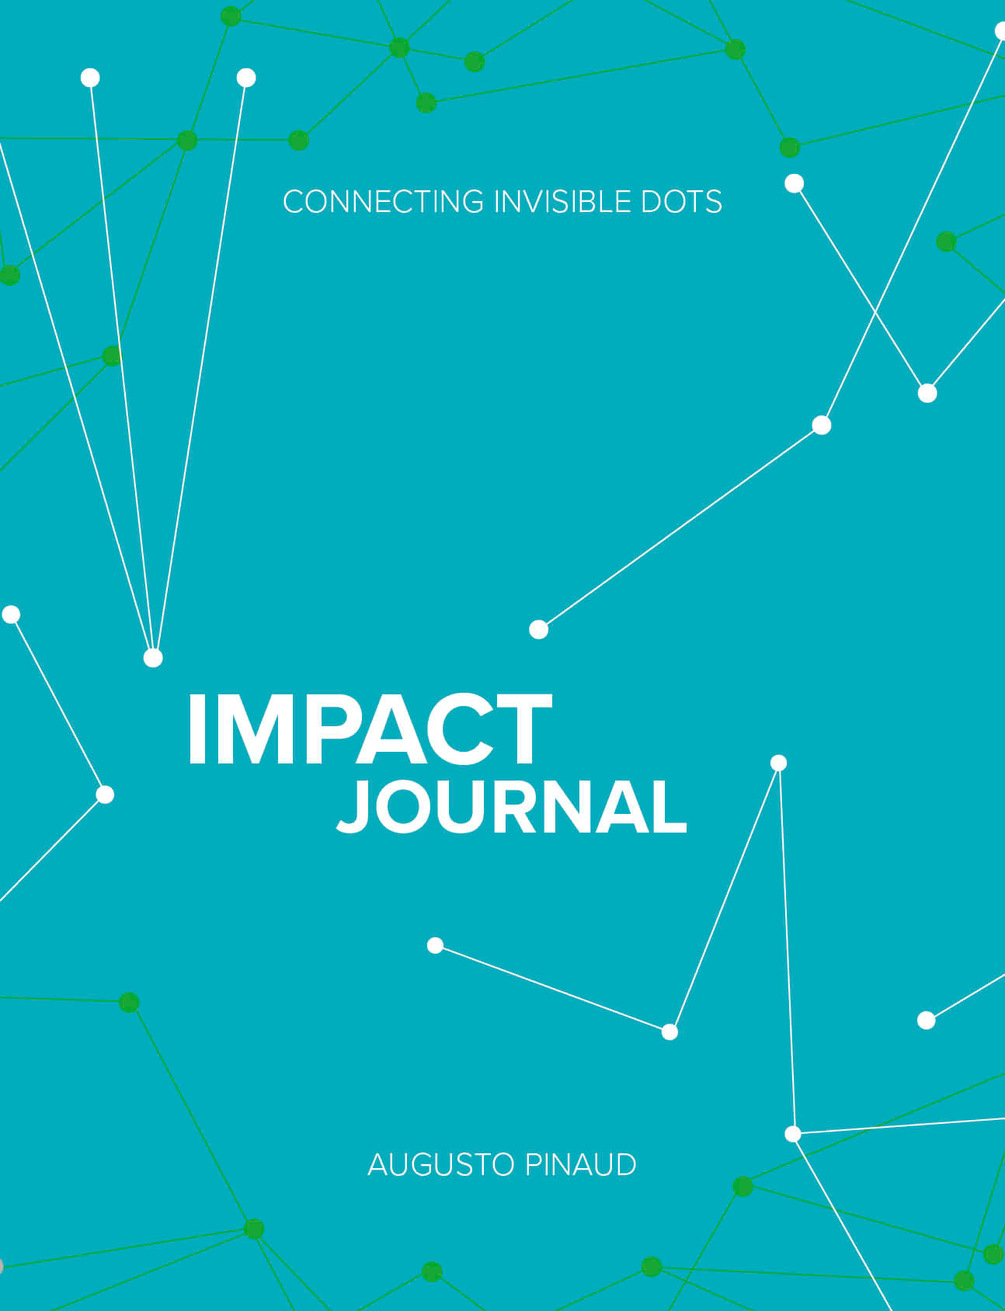 The Impact Journal